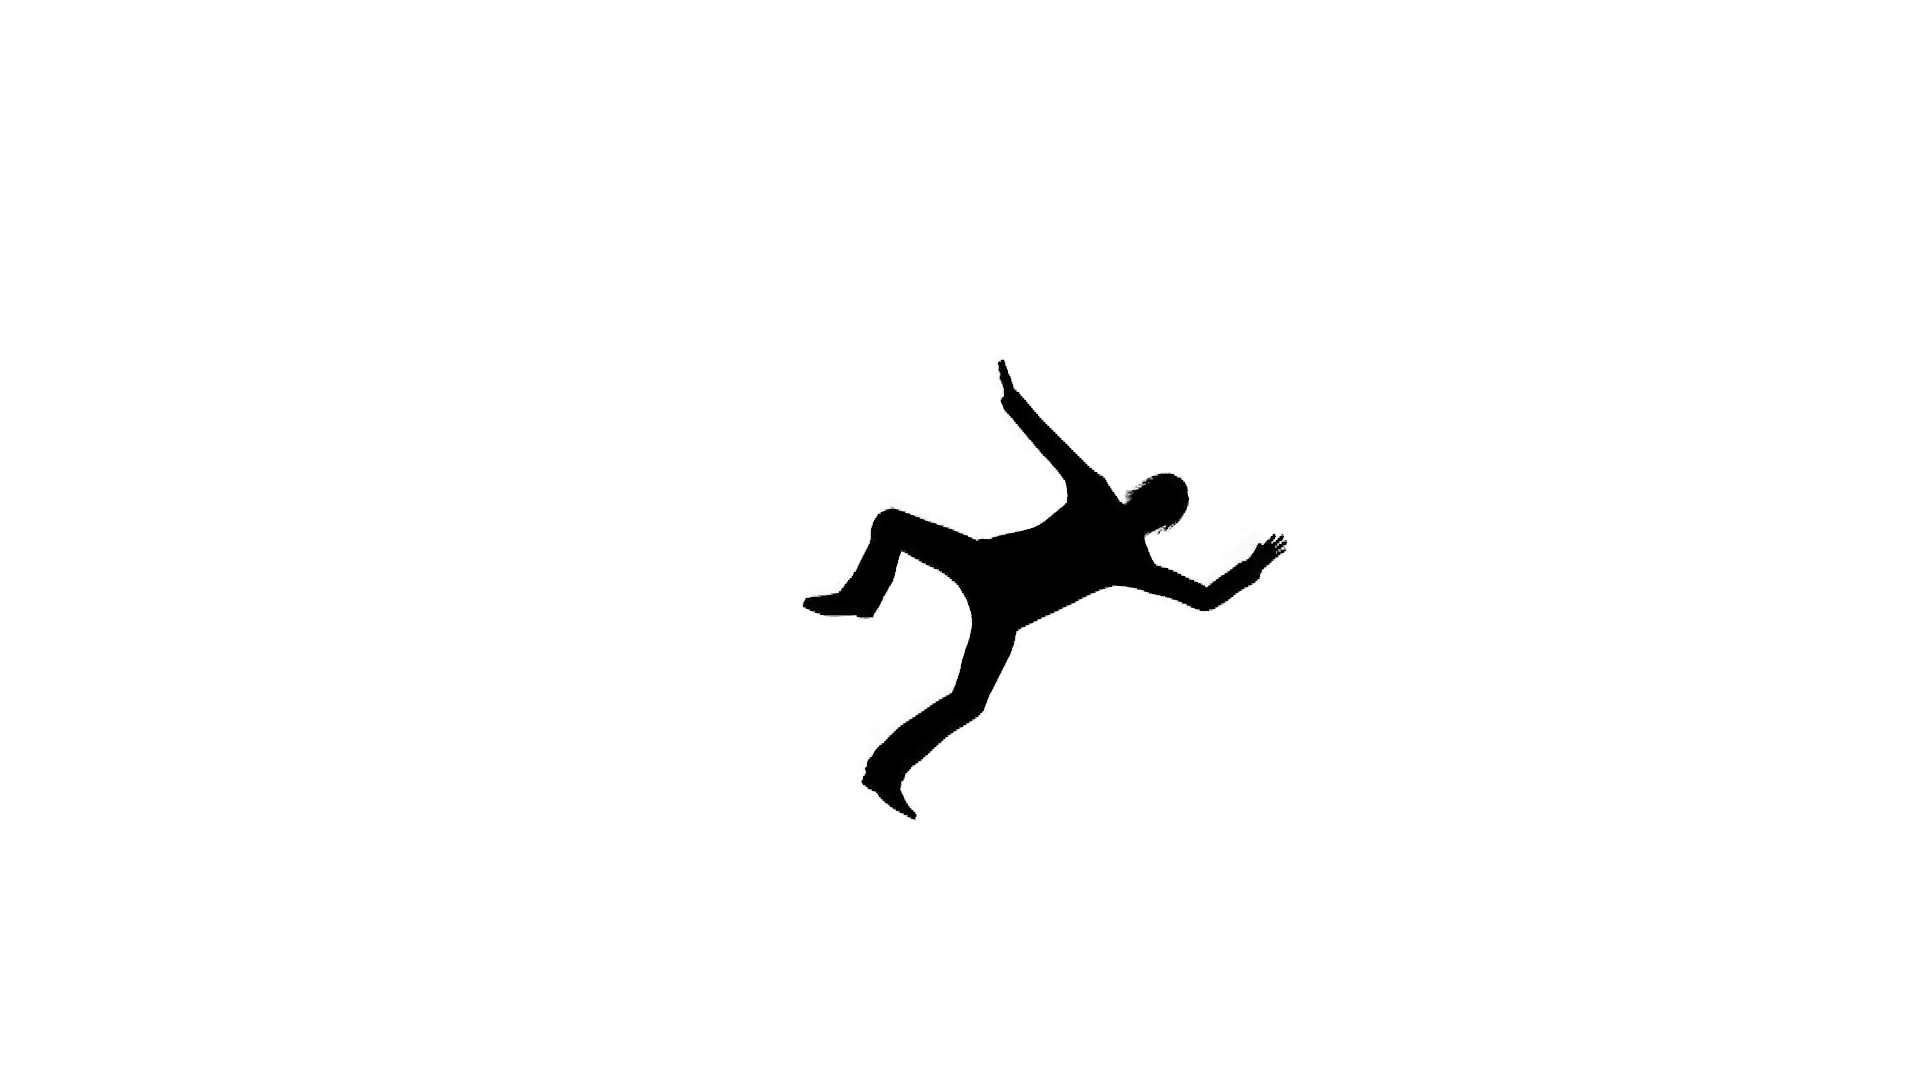 1920x1080 Falling Man Silhouette Shadow Motion Background